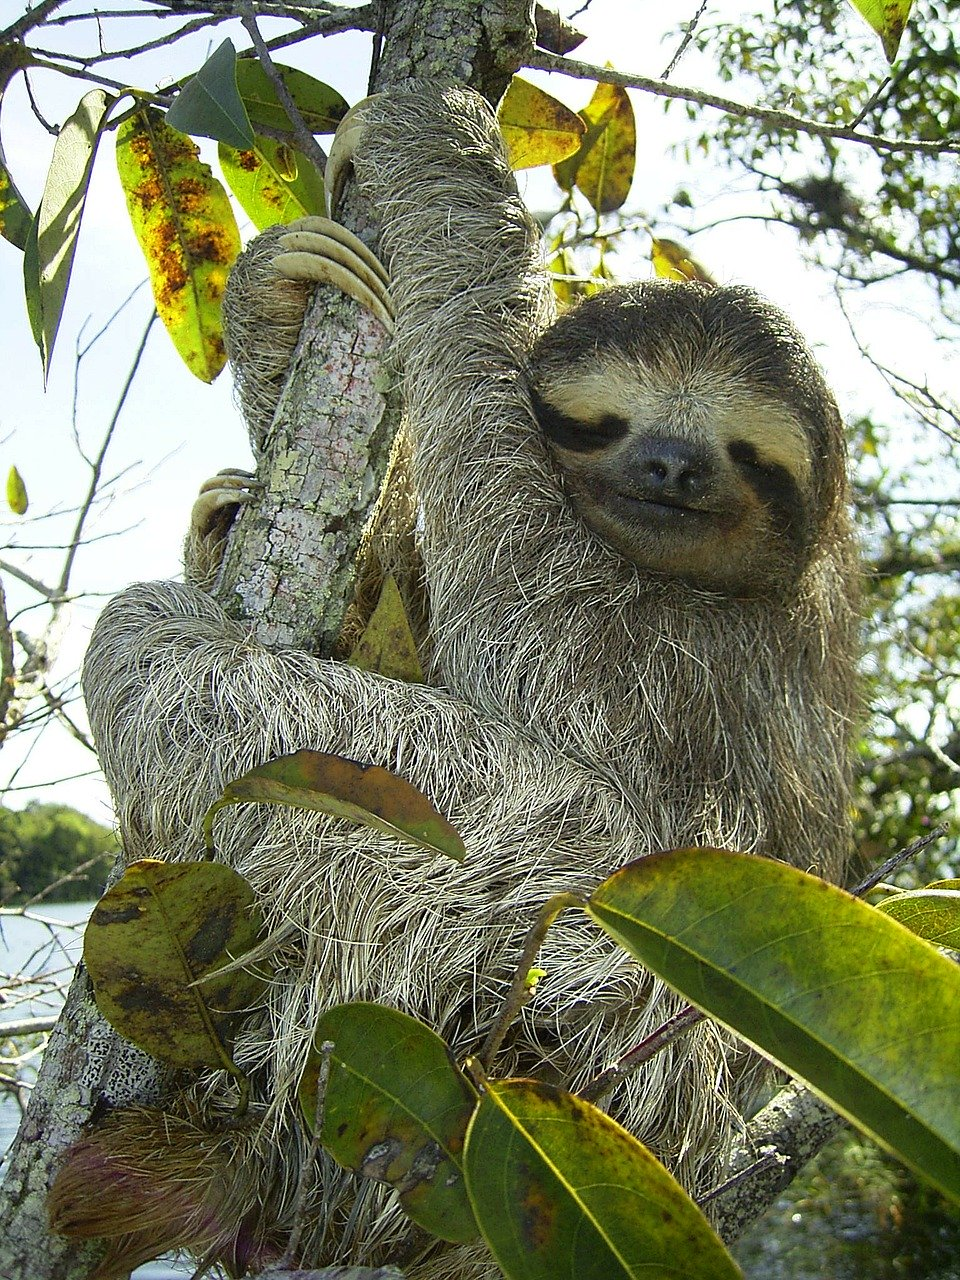 pygmy-sloth-is an endangered species